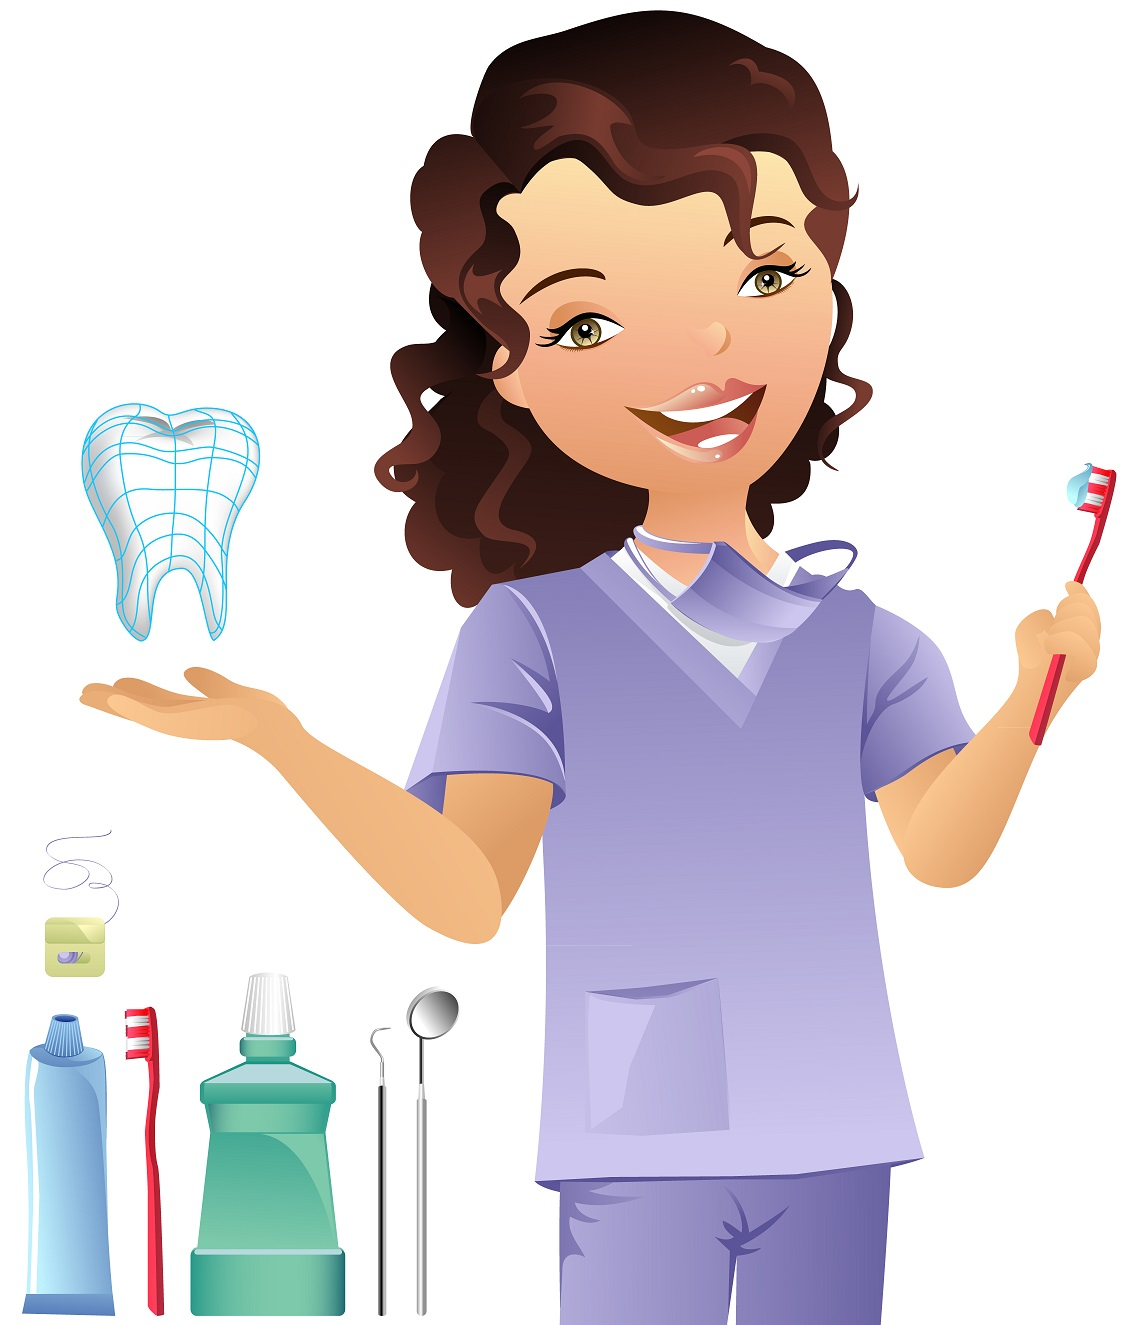 Preventive Dental Hygiene Care